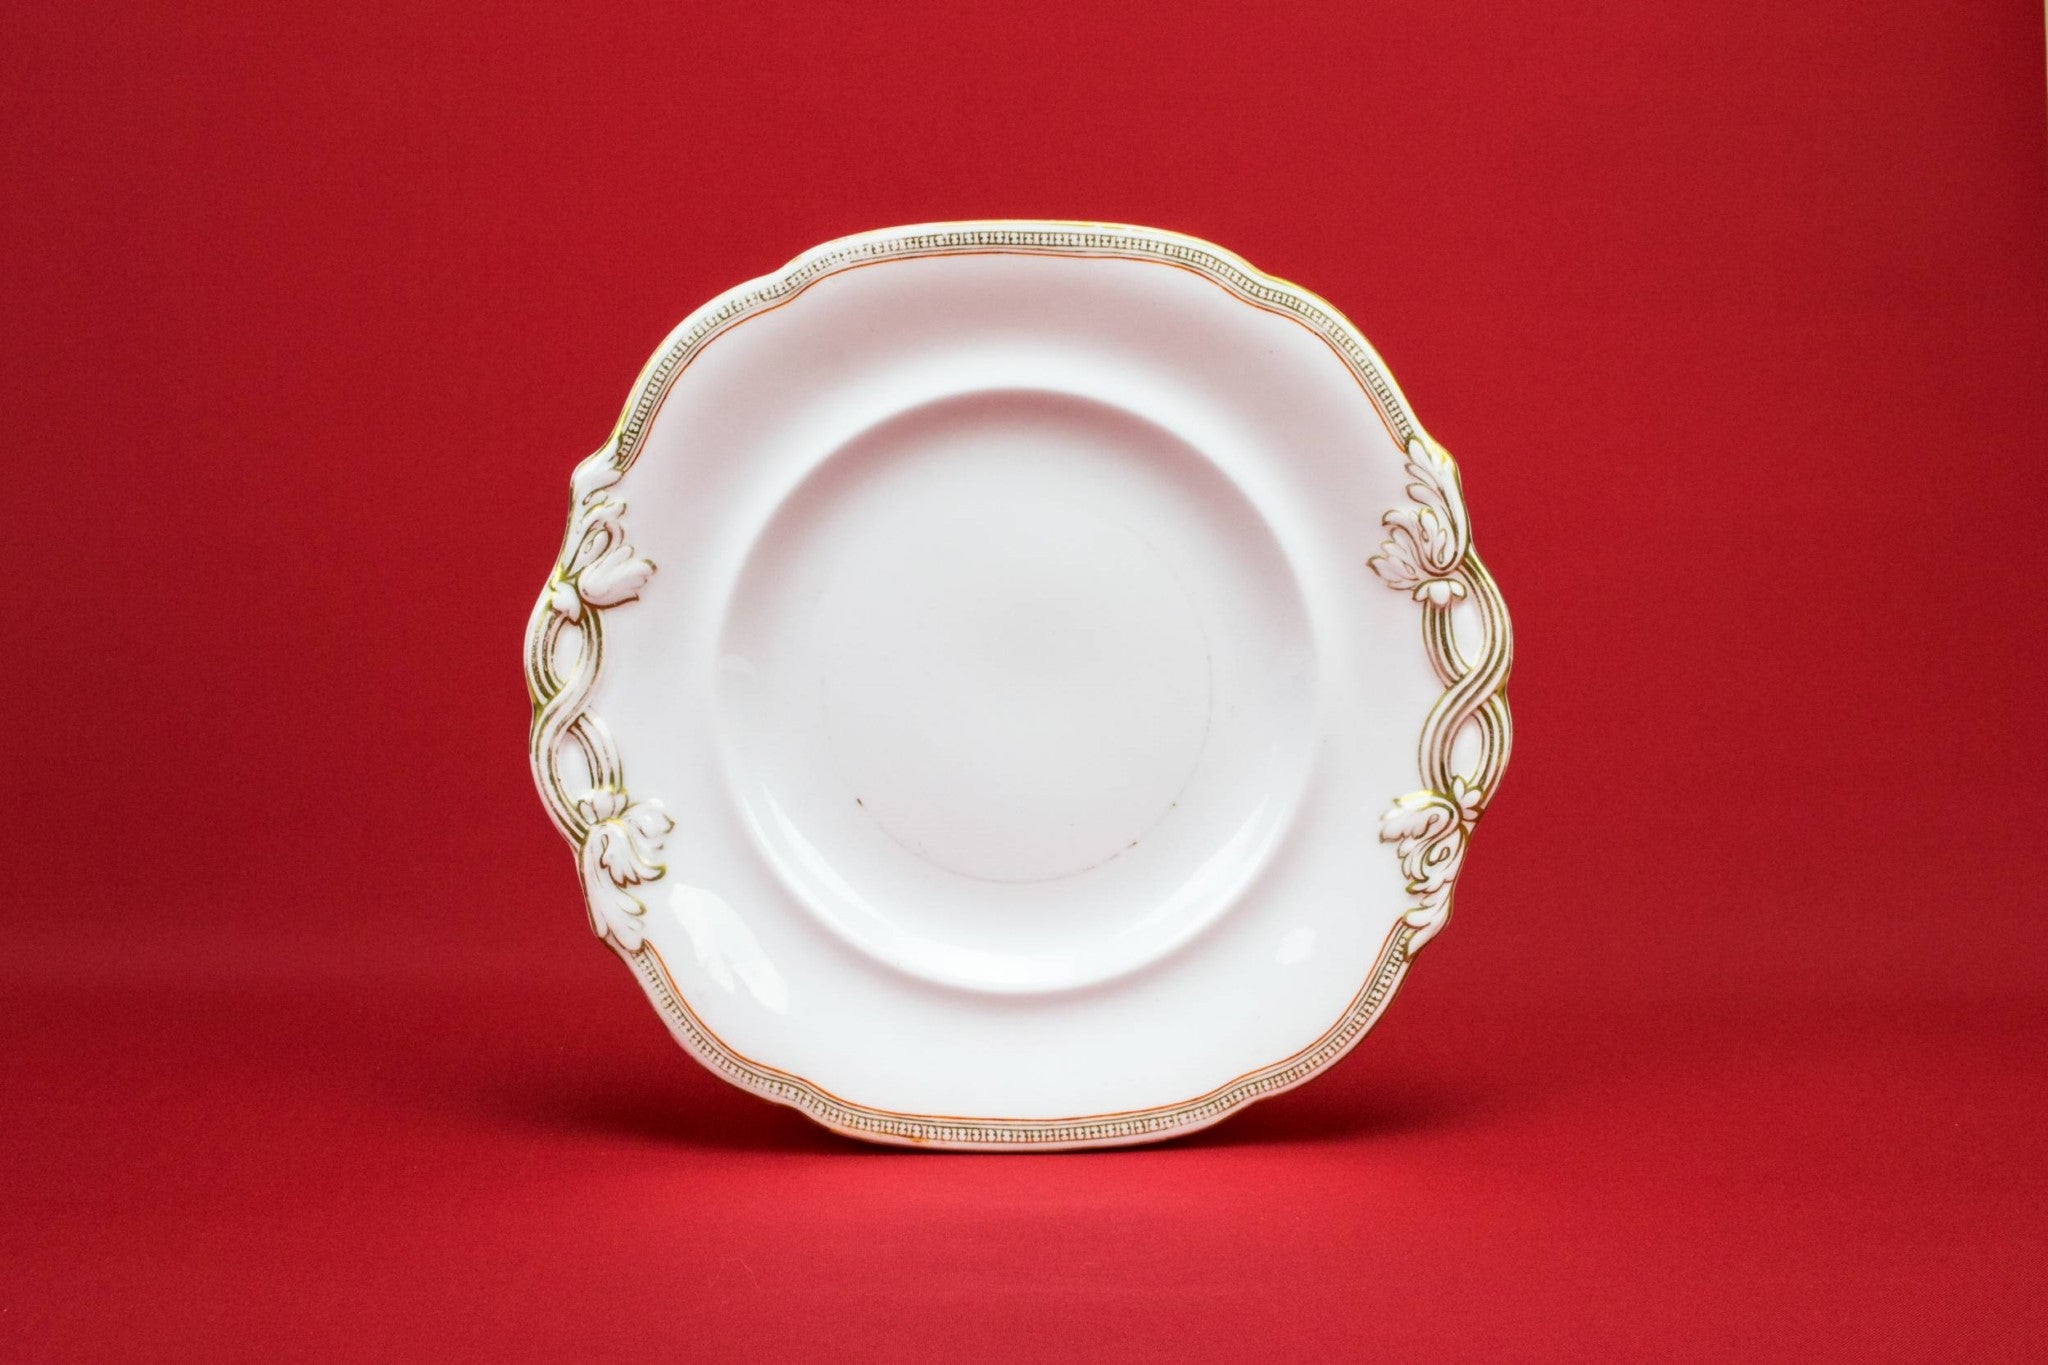 Gold and white serving plate